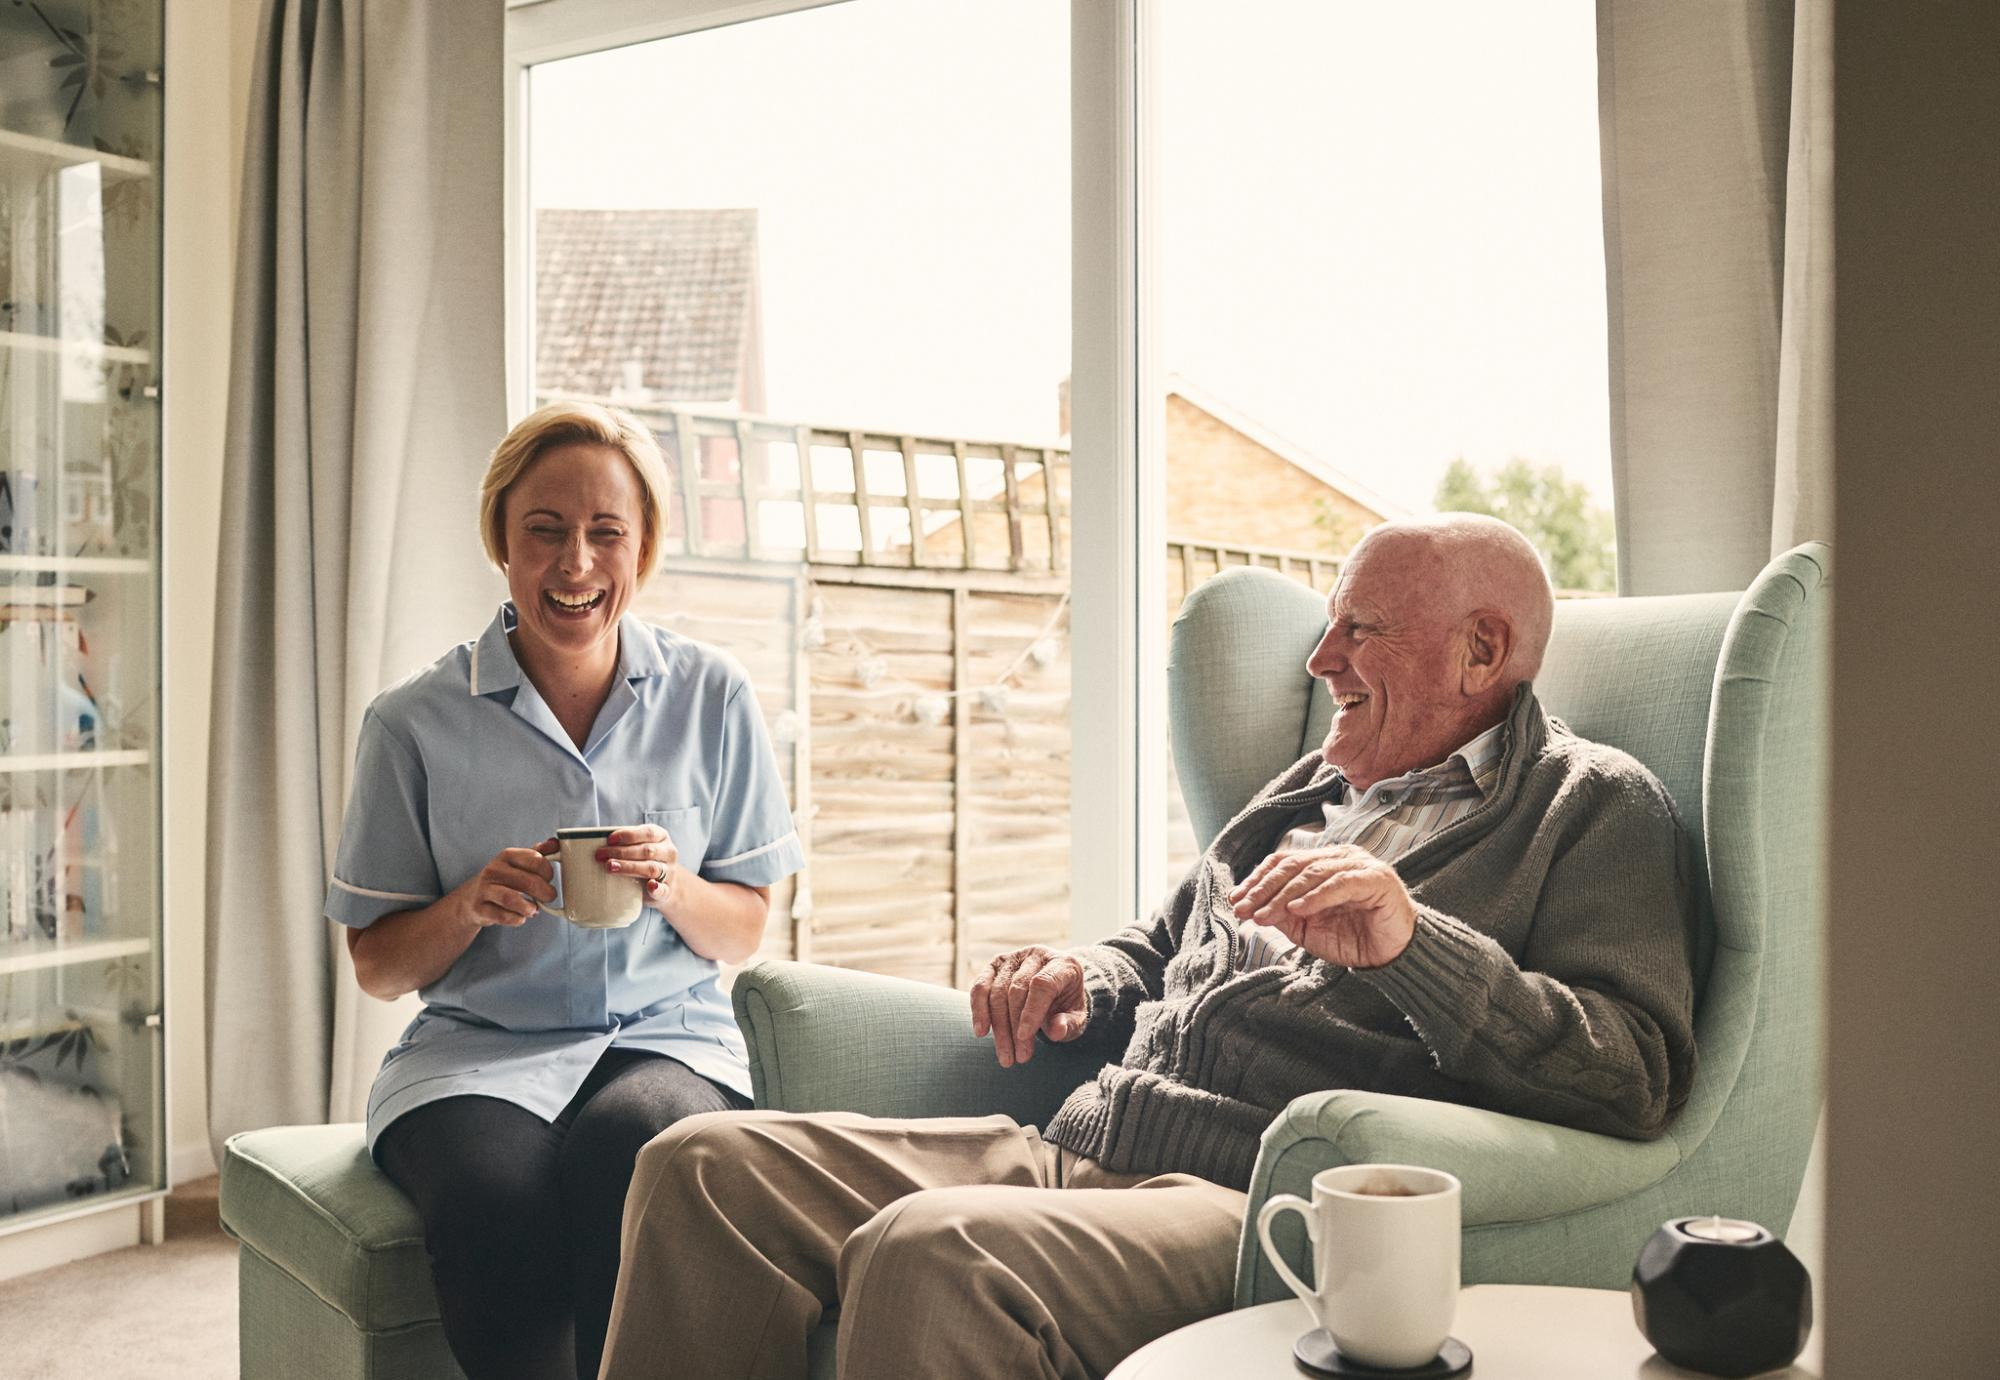 carer nurse laughing with older gentleman